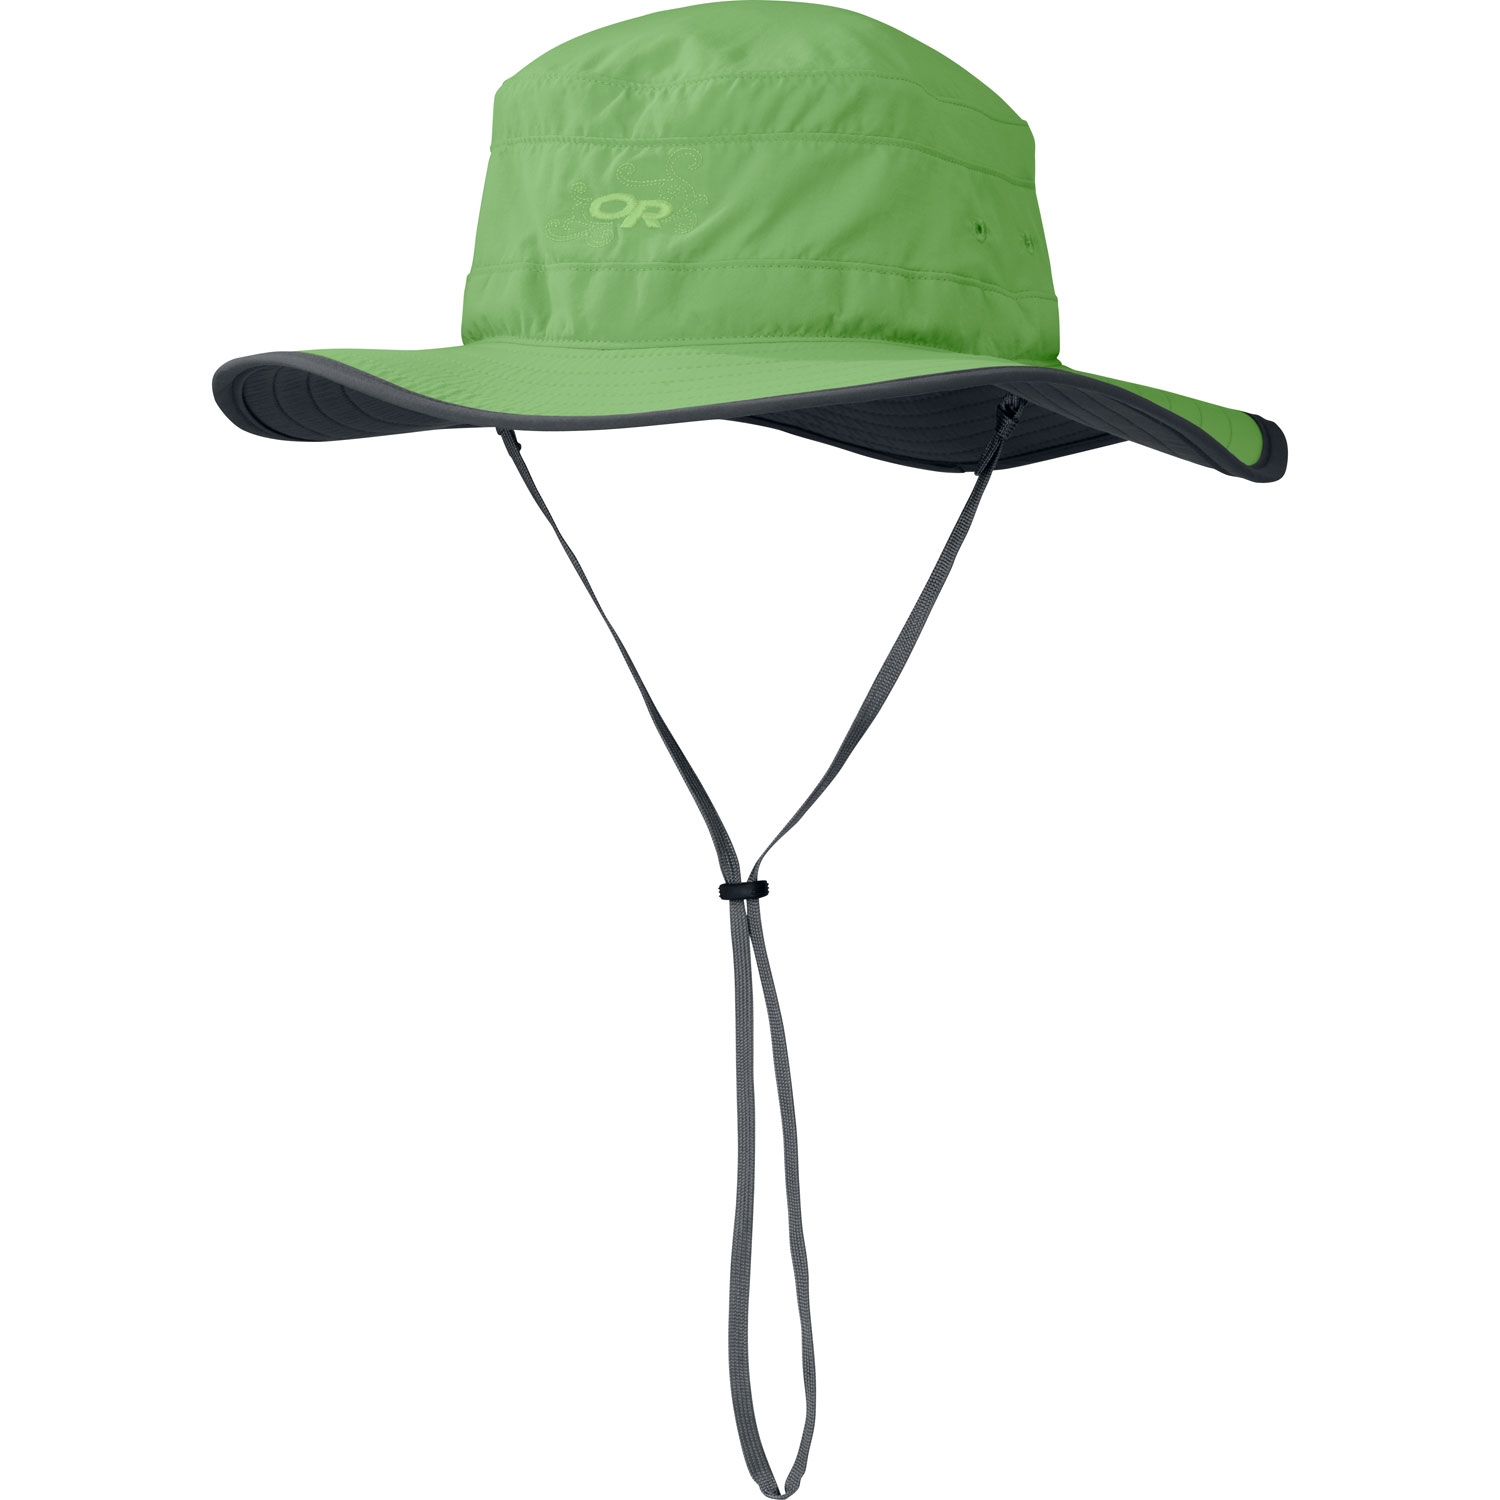 "Key Features of the Outdoor Research Solar Roller Hat: 100% Supplex® nylon Lightweight sun protection SolarShield™ construction UPF 30 Foam-stiffened brim floats TransAction™ headband Drawcord adjustment Removable chin cord Brim: 2 3/4"" - $23.95"